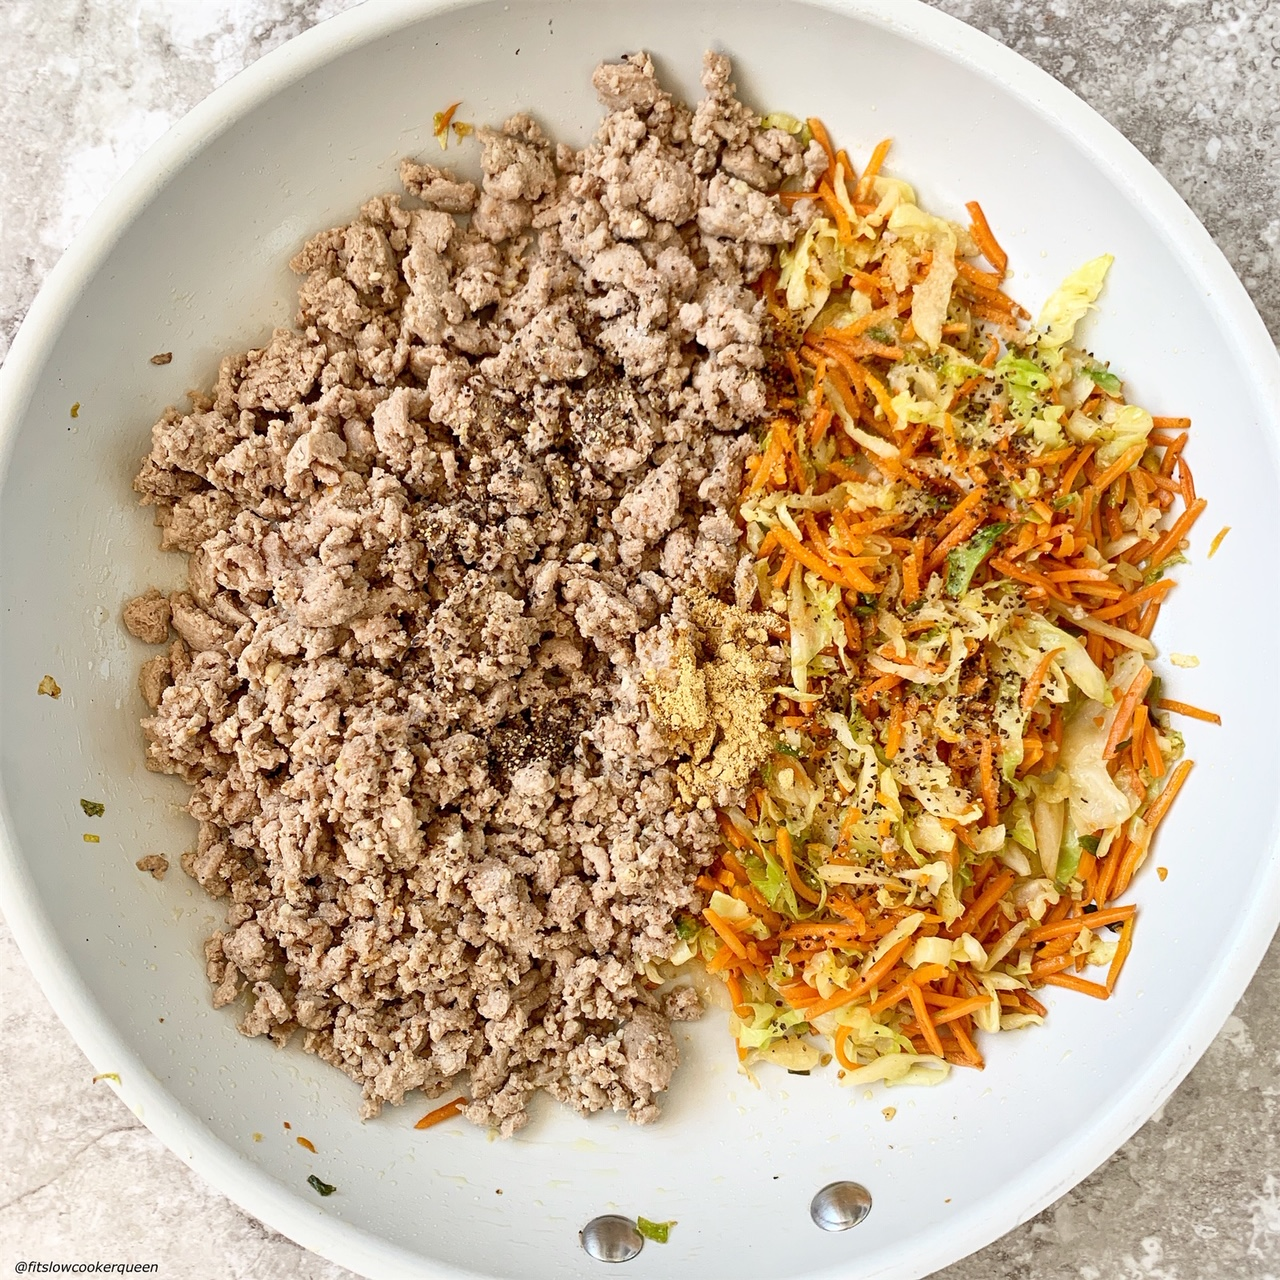 ground meat, cabbage, and carrots in a skillet with seasonings